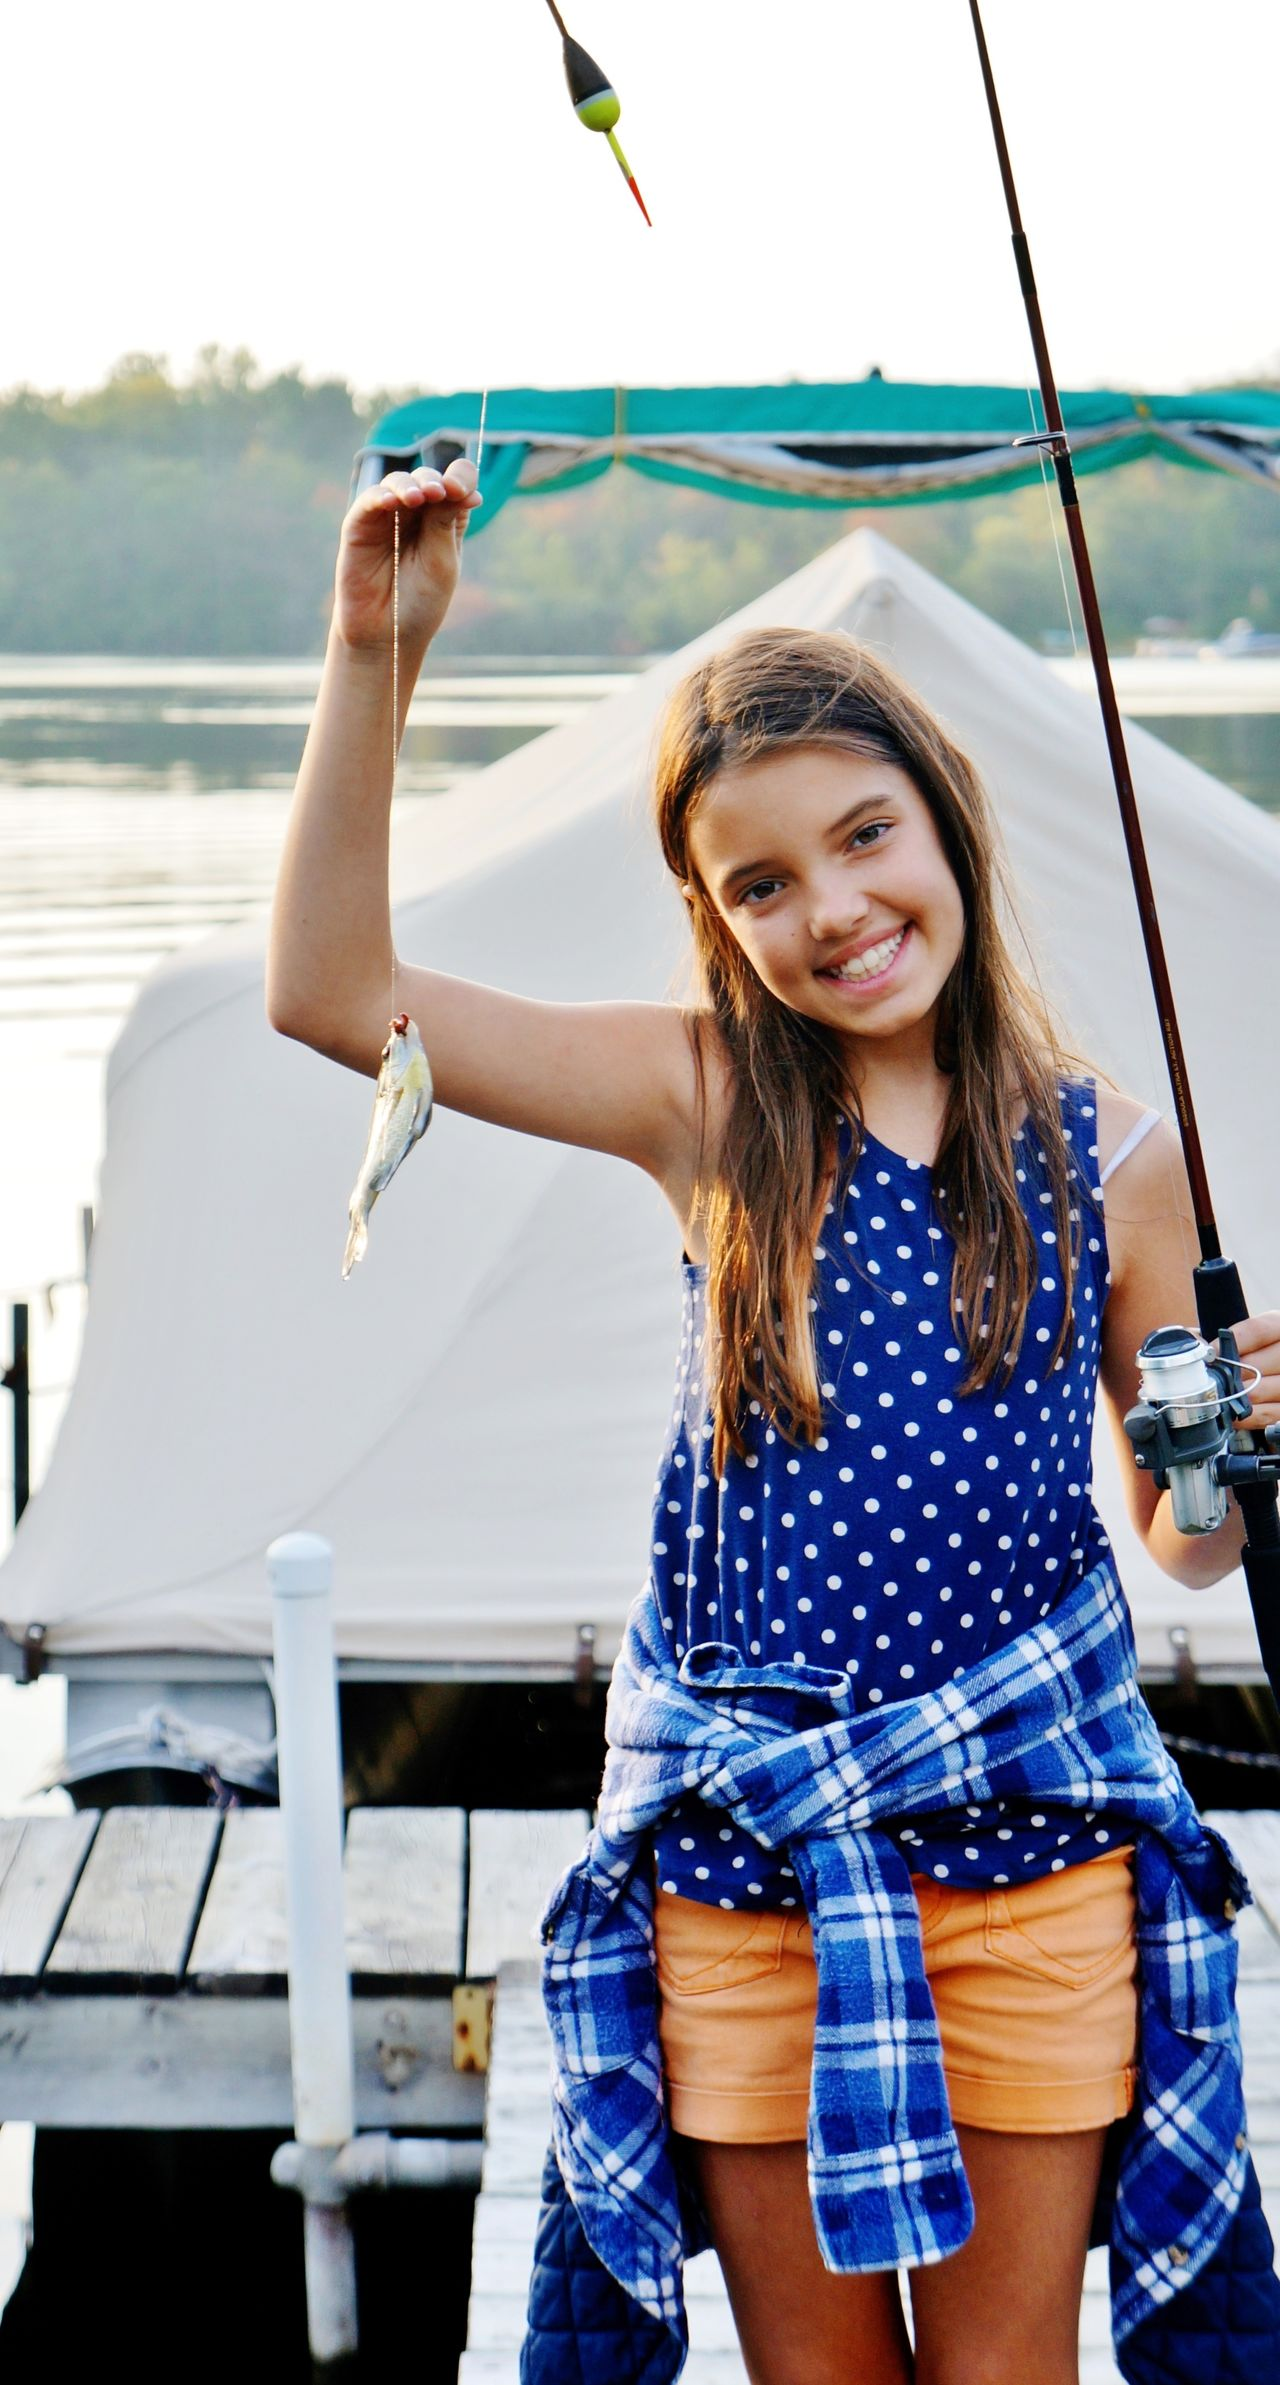 Beautiful stock photos of angeln, 10-11 Years, Casual Clothing, Catch Of Fish, Caucasian Ethnicity